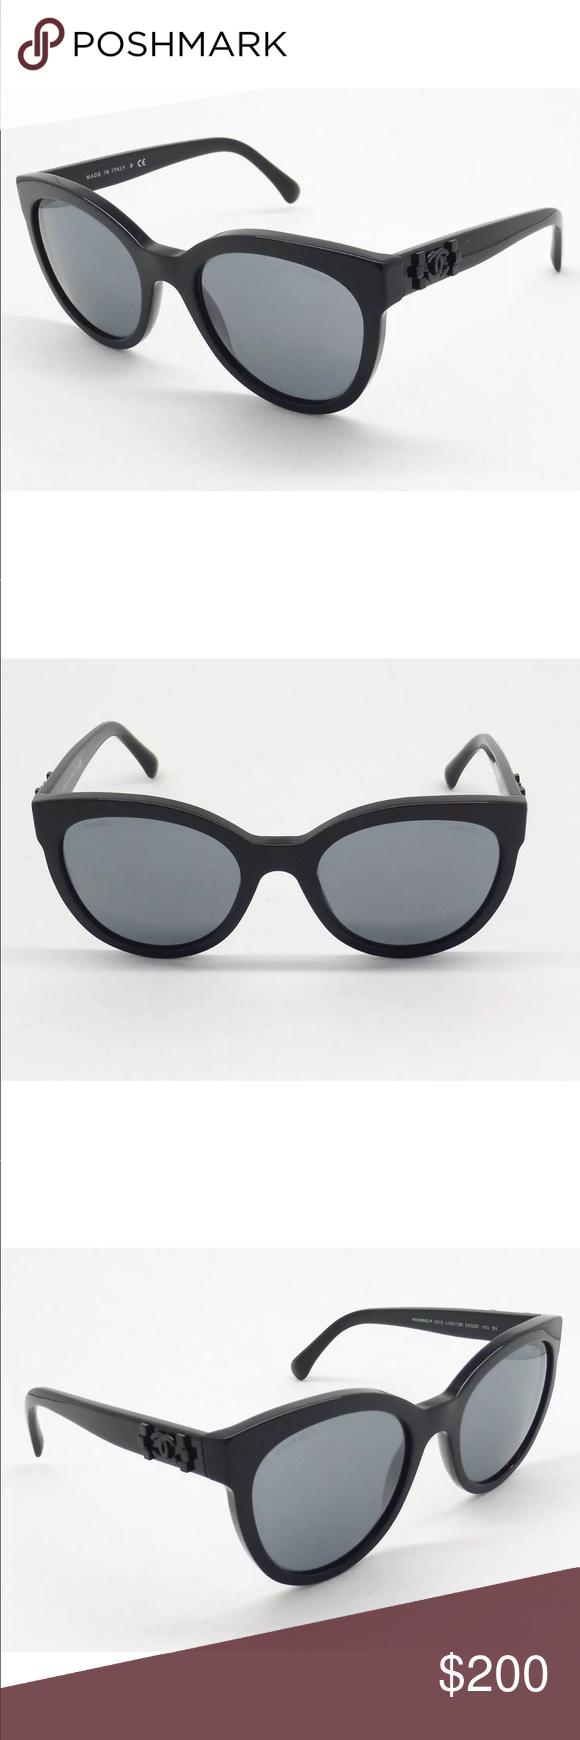 d6740a06f8c Spotted while shopping on Poshmark  Authentic Chanel Brick Sunglasses 🕶!   poshmark  fashion  shopping  style  CHANEL  Accessories